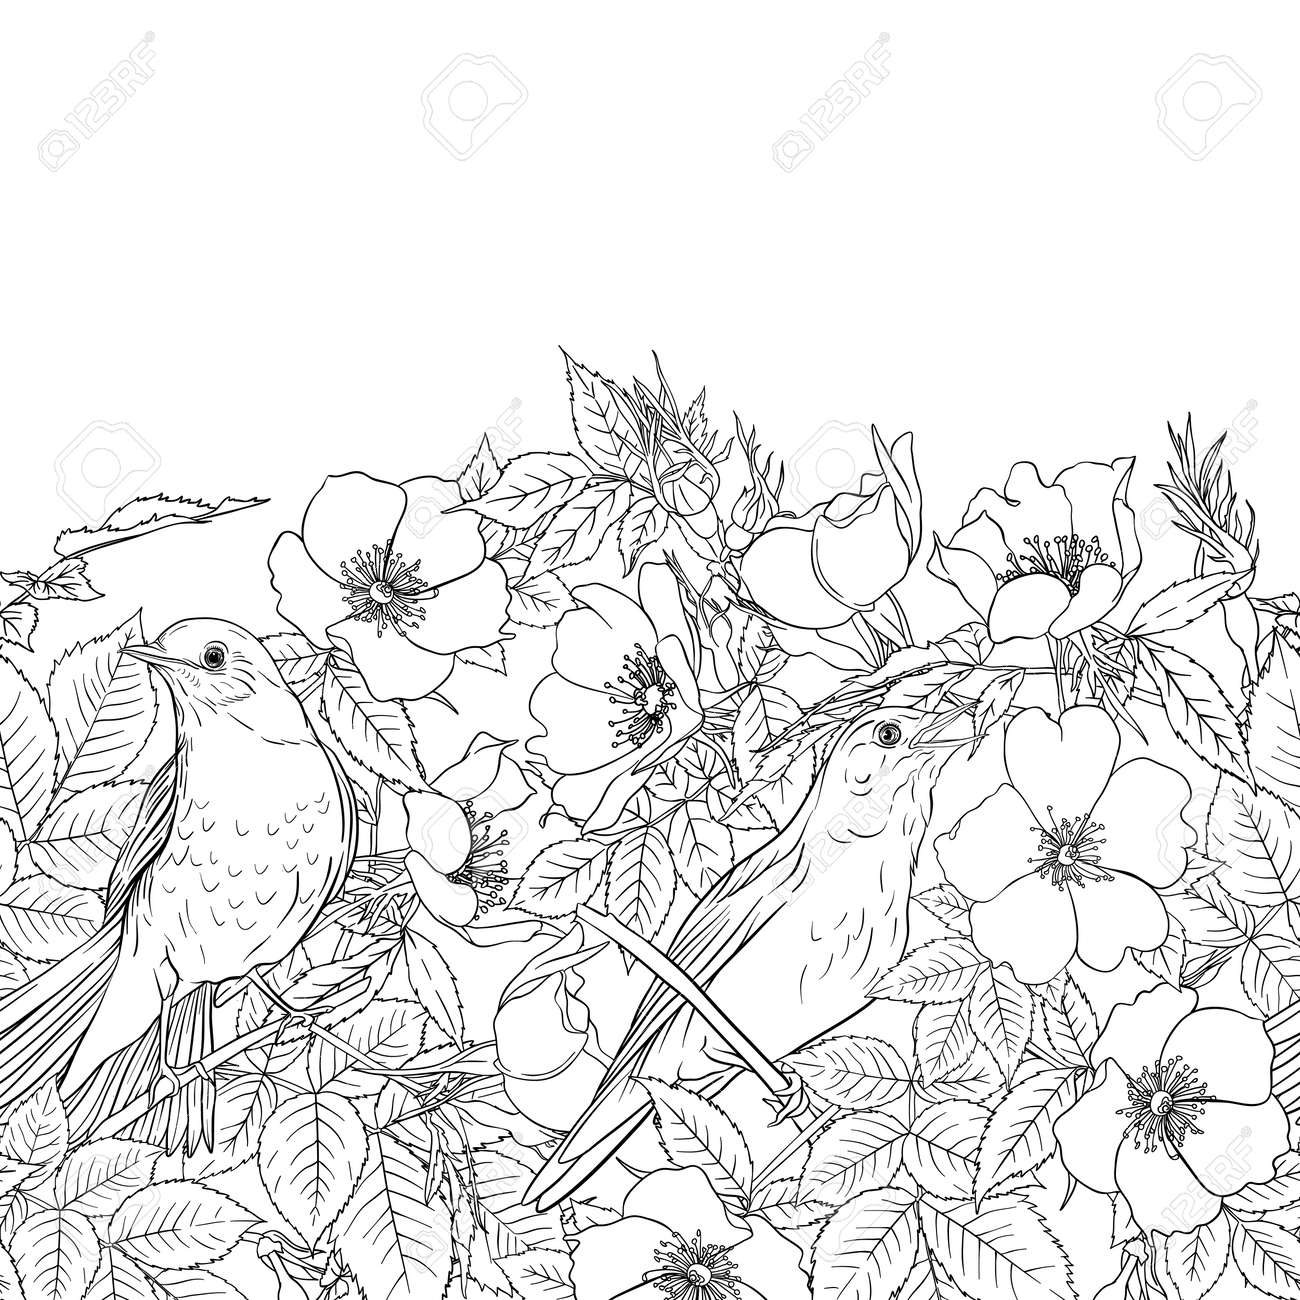 Seamless pattern, background with dog-rose, briar, brier, eglantine, canker-rose . Template for wedding invitation, greeting card, gift voucher. Graphic outline drawing, Vector illustration. - 134179016